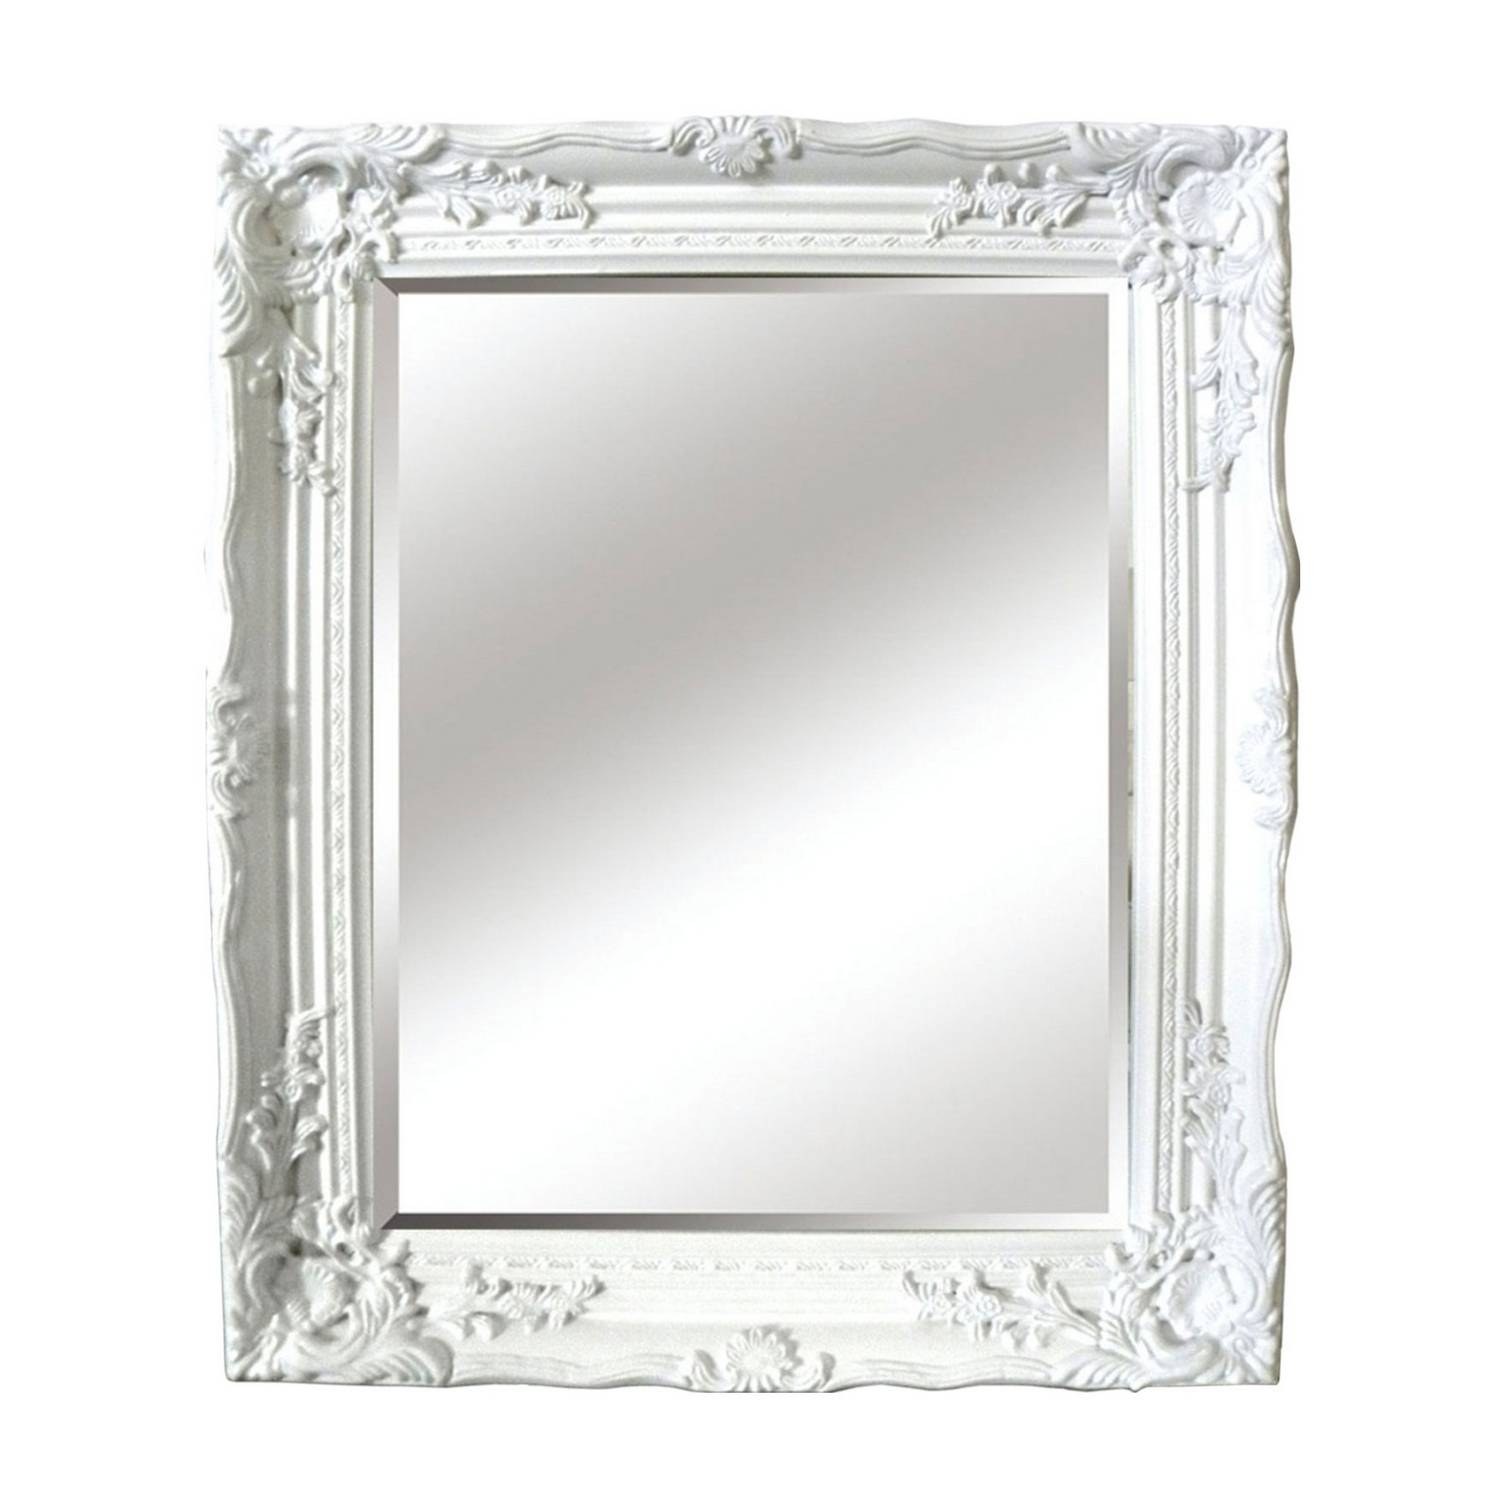 Buy Antique White Ornate Mirror Mirrors The Range Home Throughout Ornate White Mirror (Image 3 of 15)